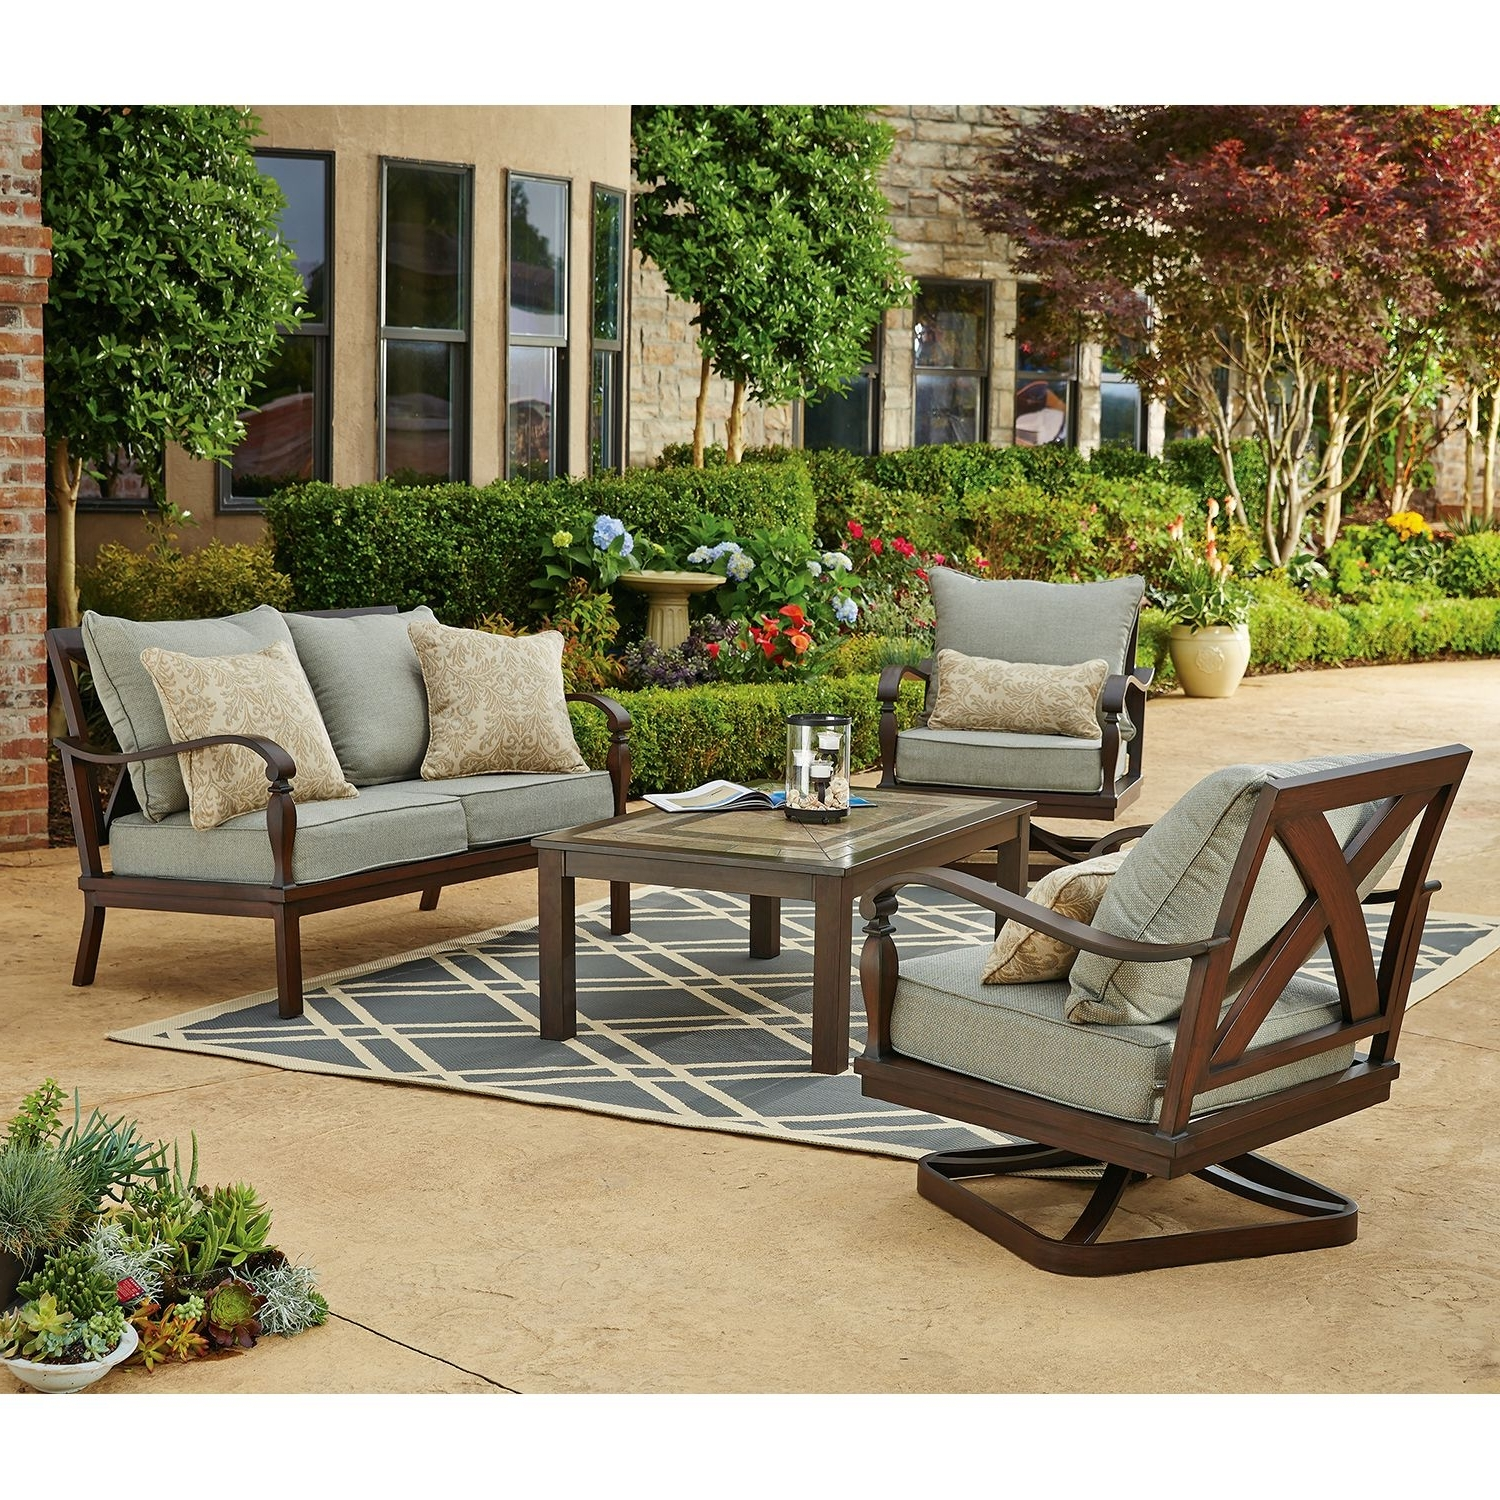 Fashionable Patio Conversation Sets Without Cushions With Furniture: Cozy Wrought Iron Patio Chairs With Cushions And Gray (View 12 of 20)